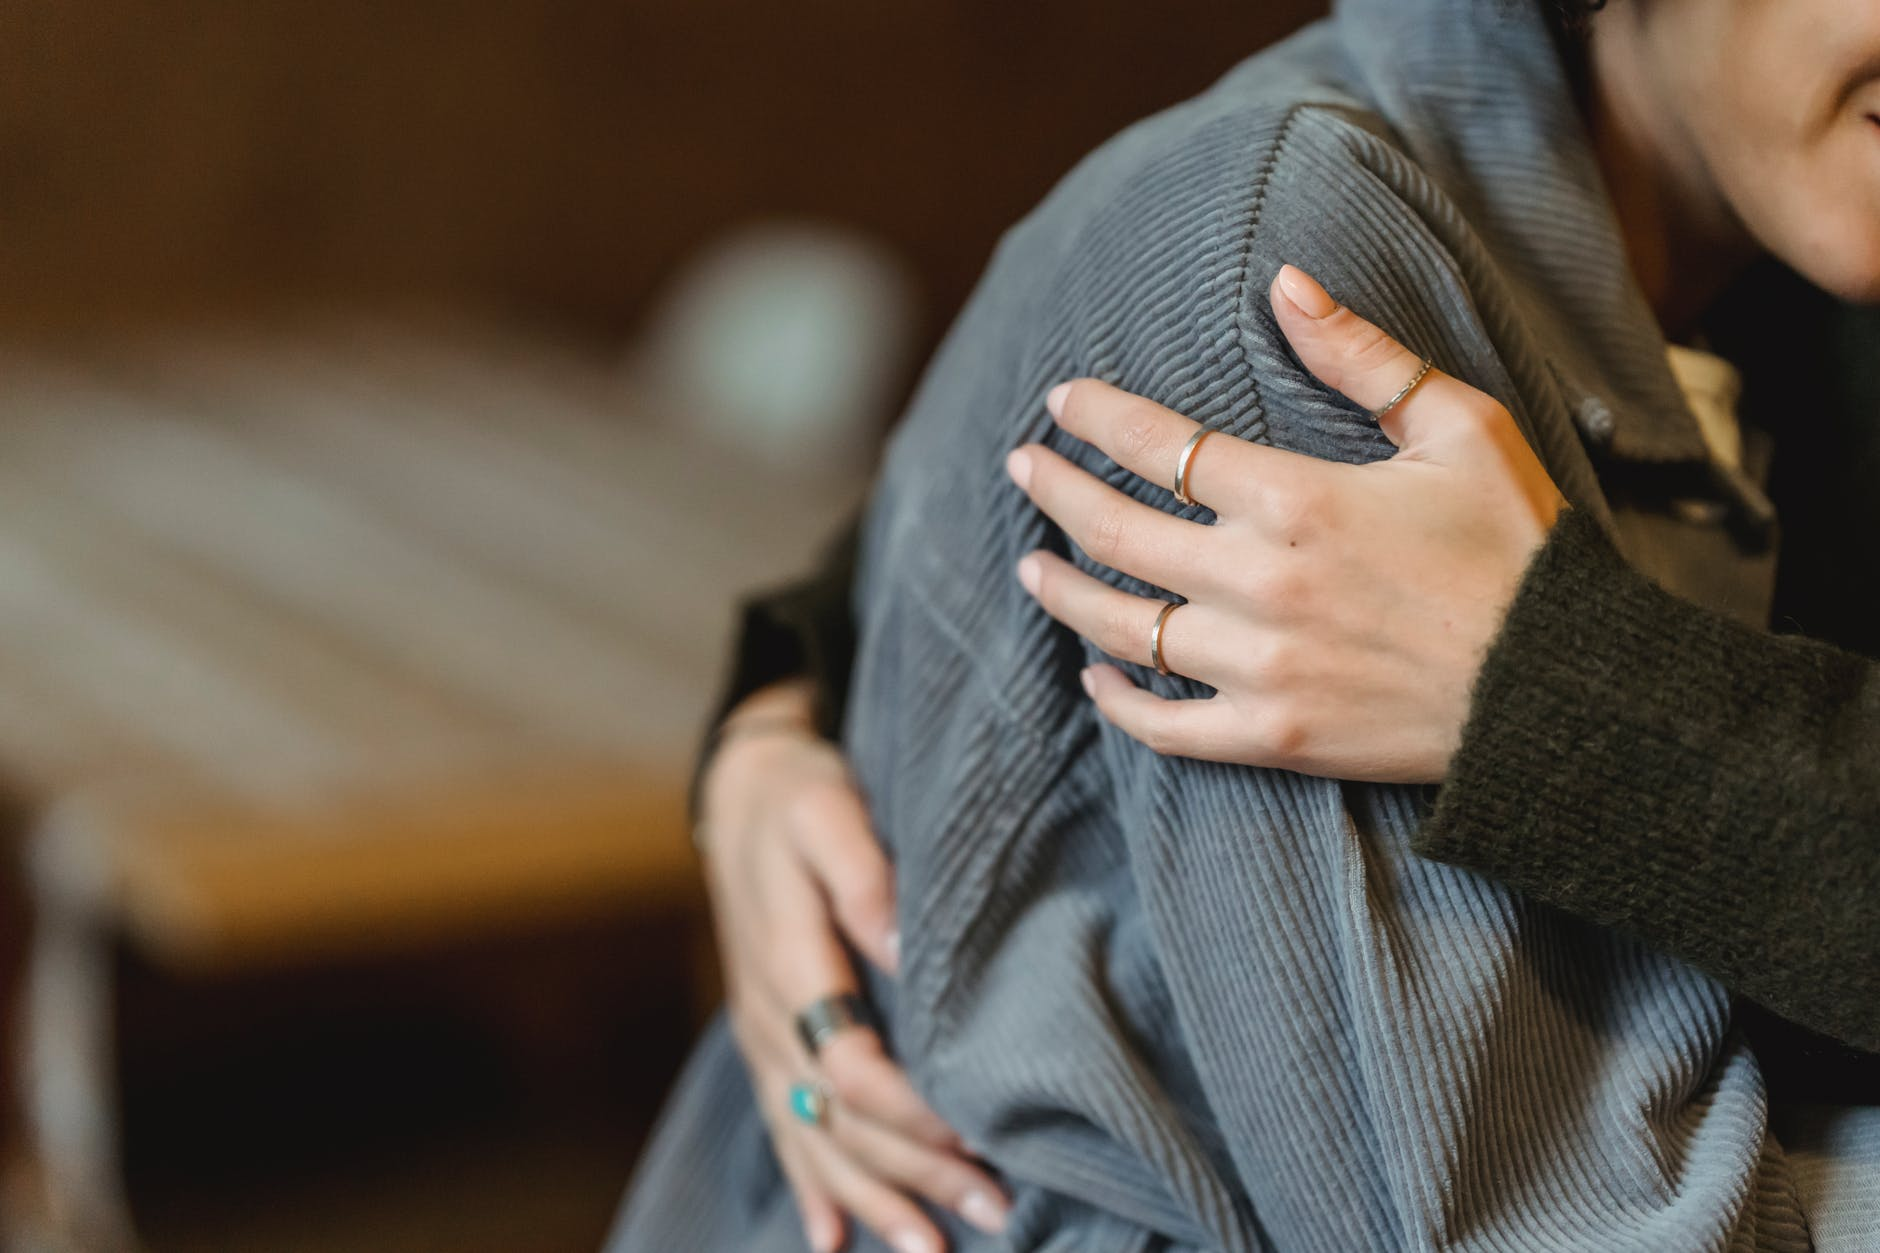 I comforted Emma after her miscarriage. | Source: Pexels